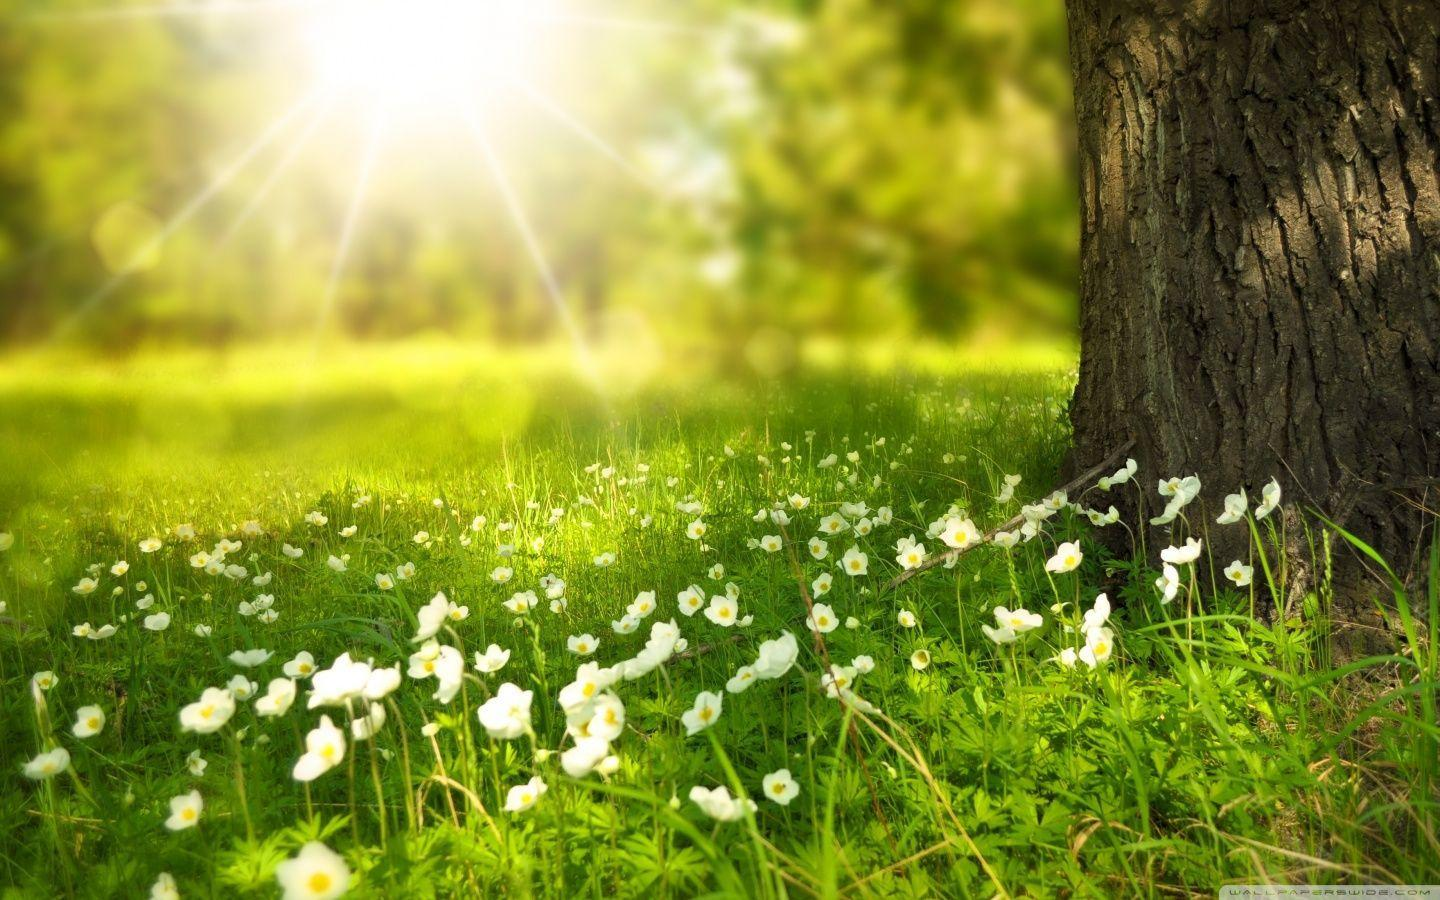 Spring wallpapers HD free download | HD Wallpapers, Backgrounds ...